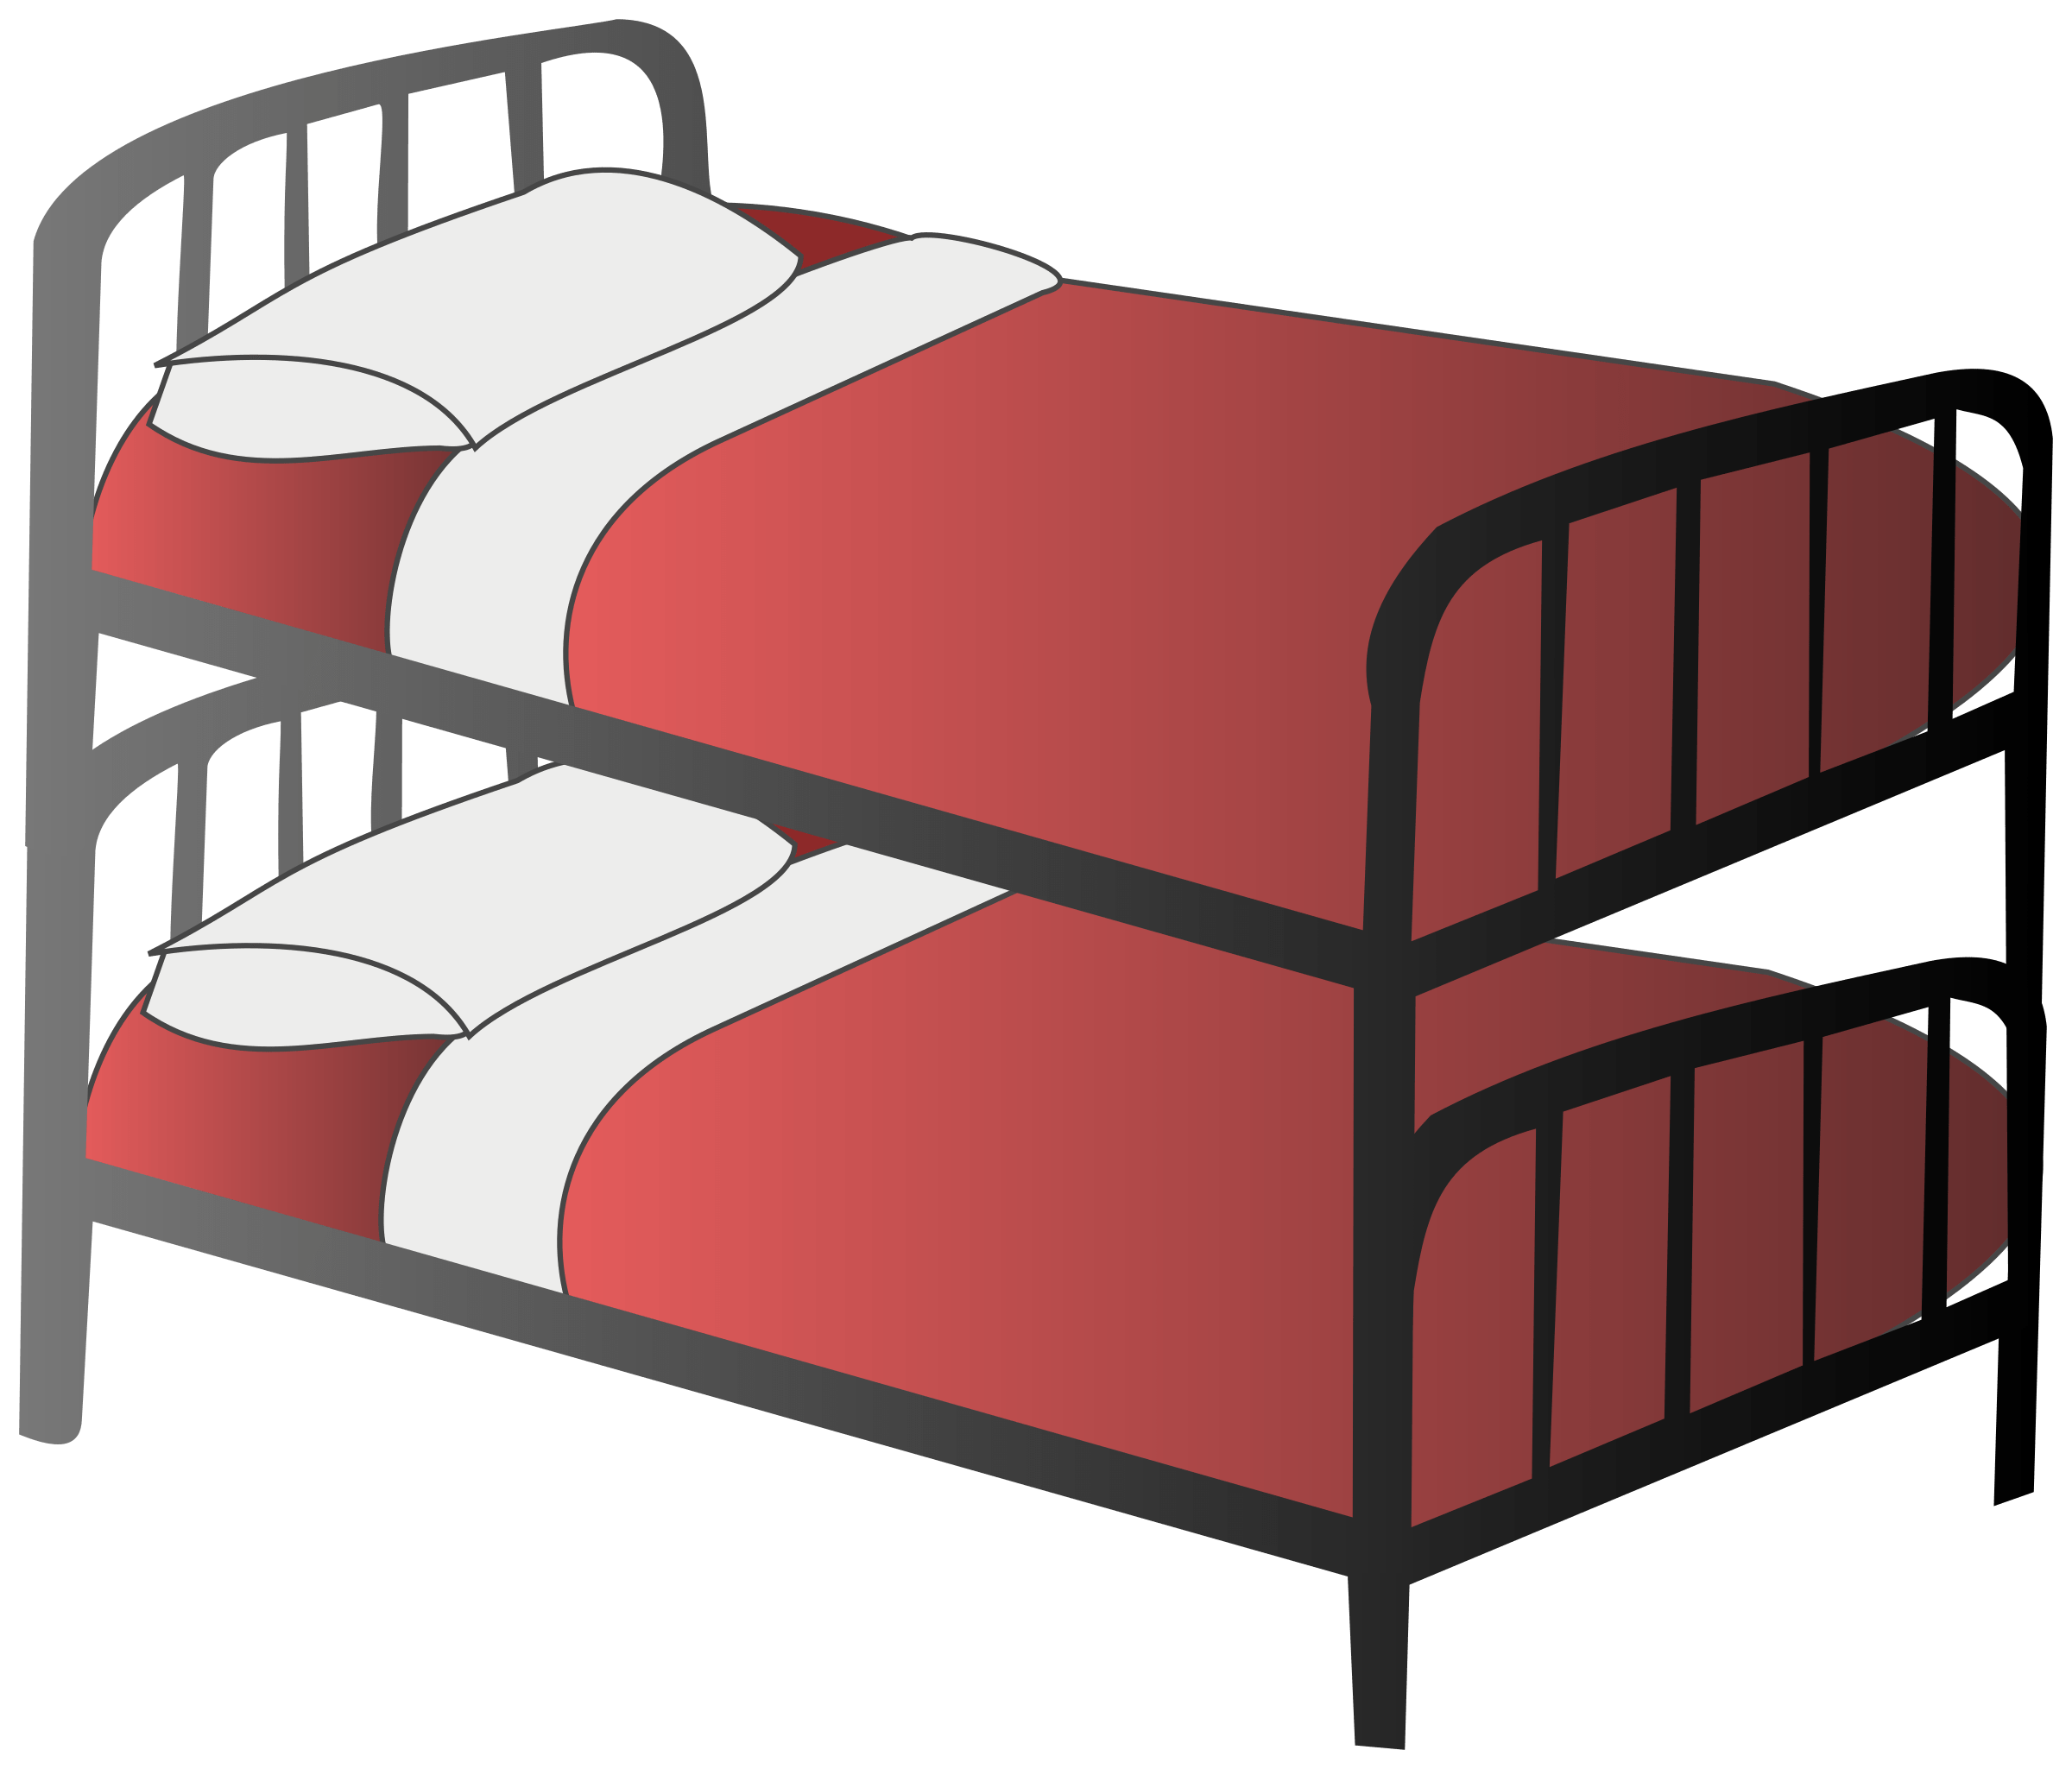 Bunk Bed transparent PNG.